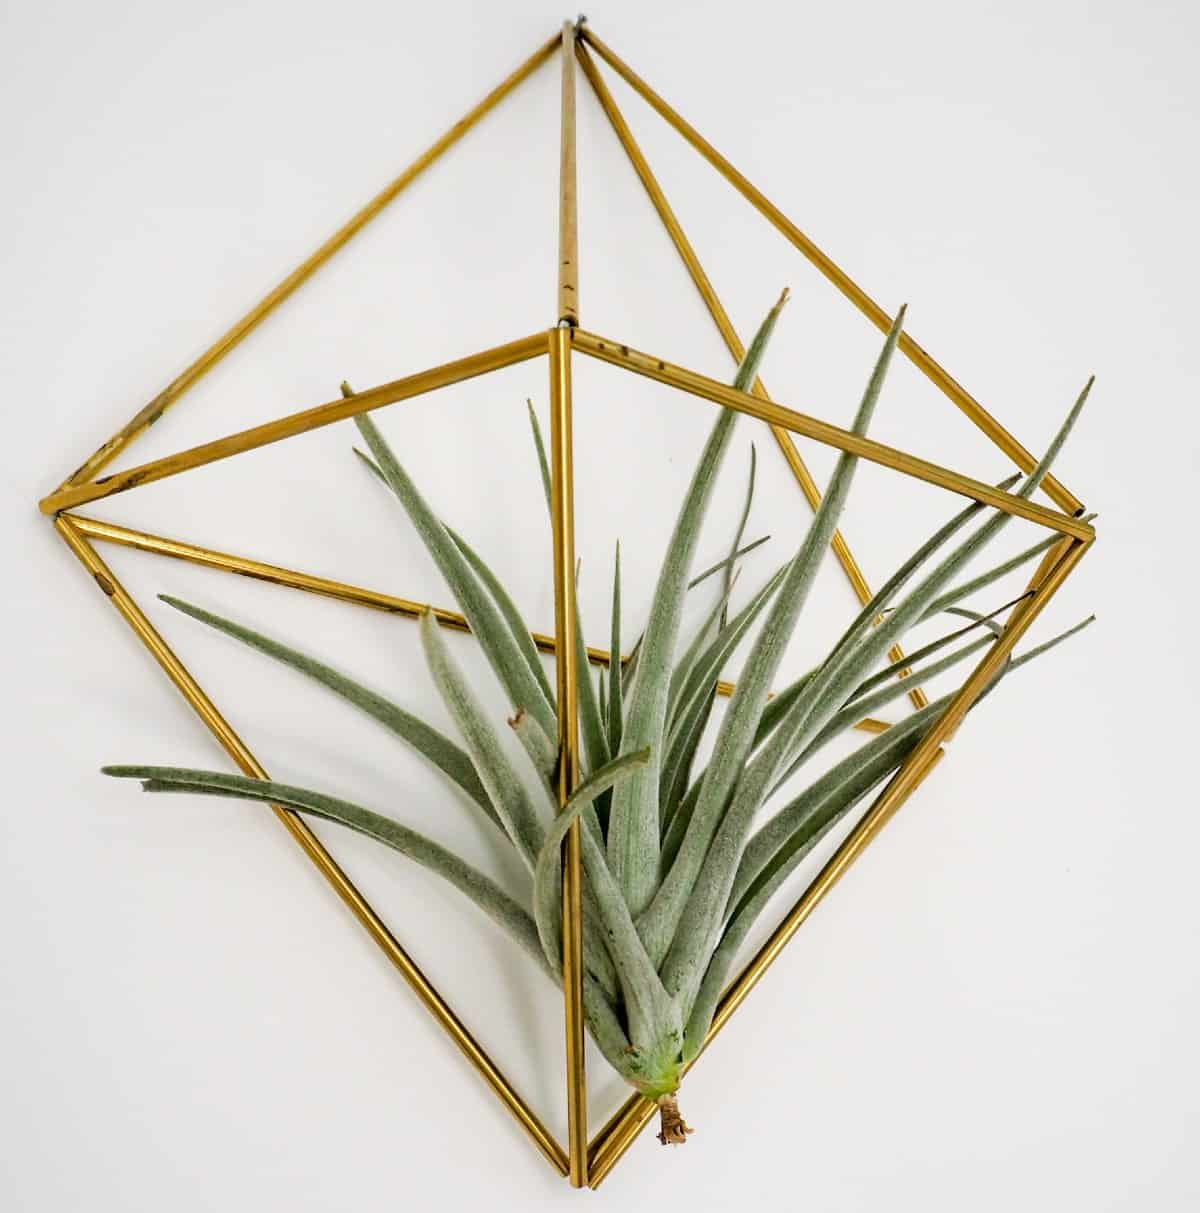 Air plants get their nutrients from the air around them.